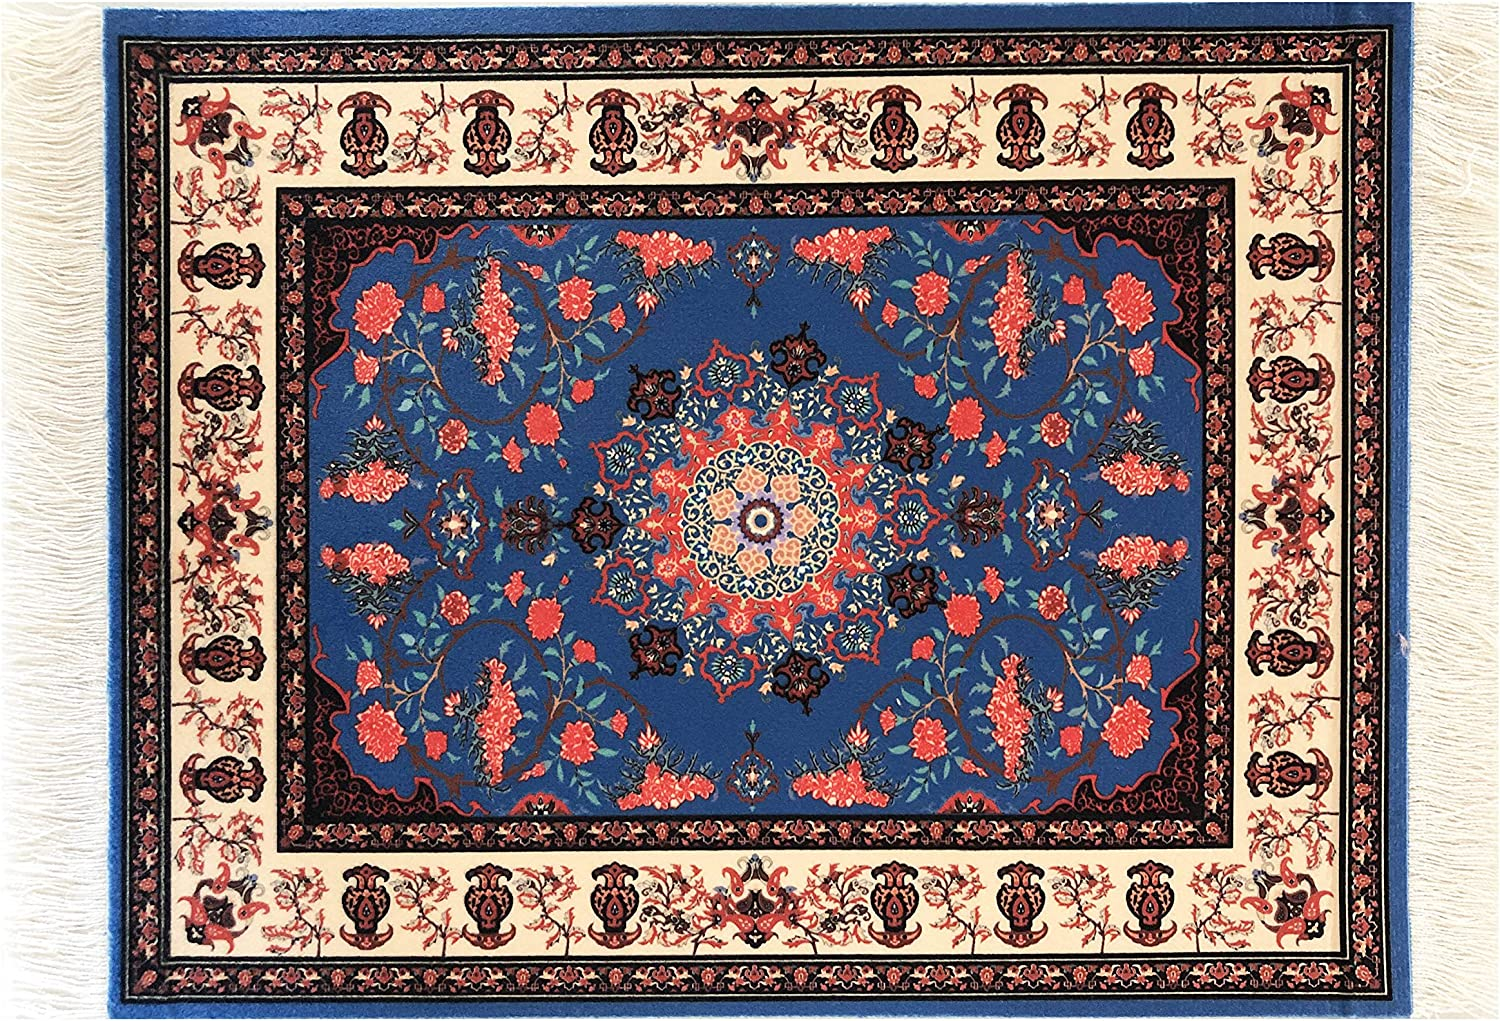 Oriental Max 66% OFF Rug Mouse Discount is also underway Pad - Turkish G Mousemat Carpet Style Great